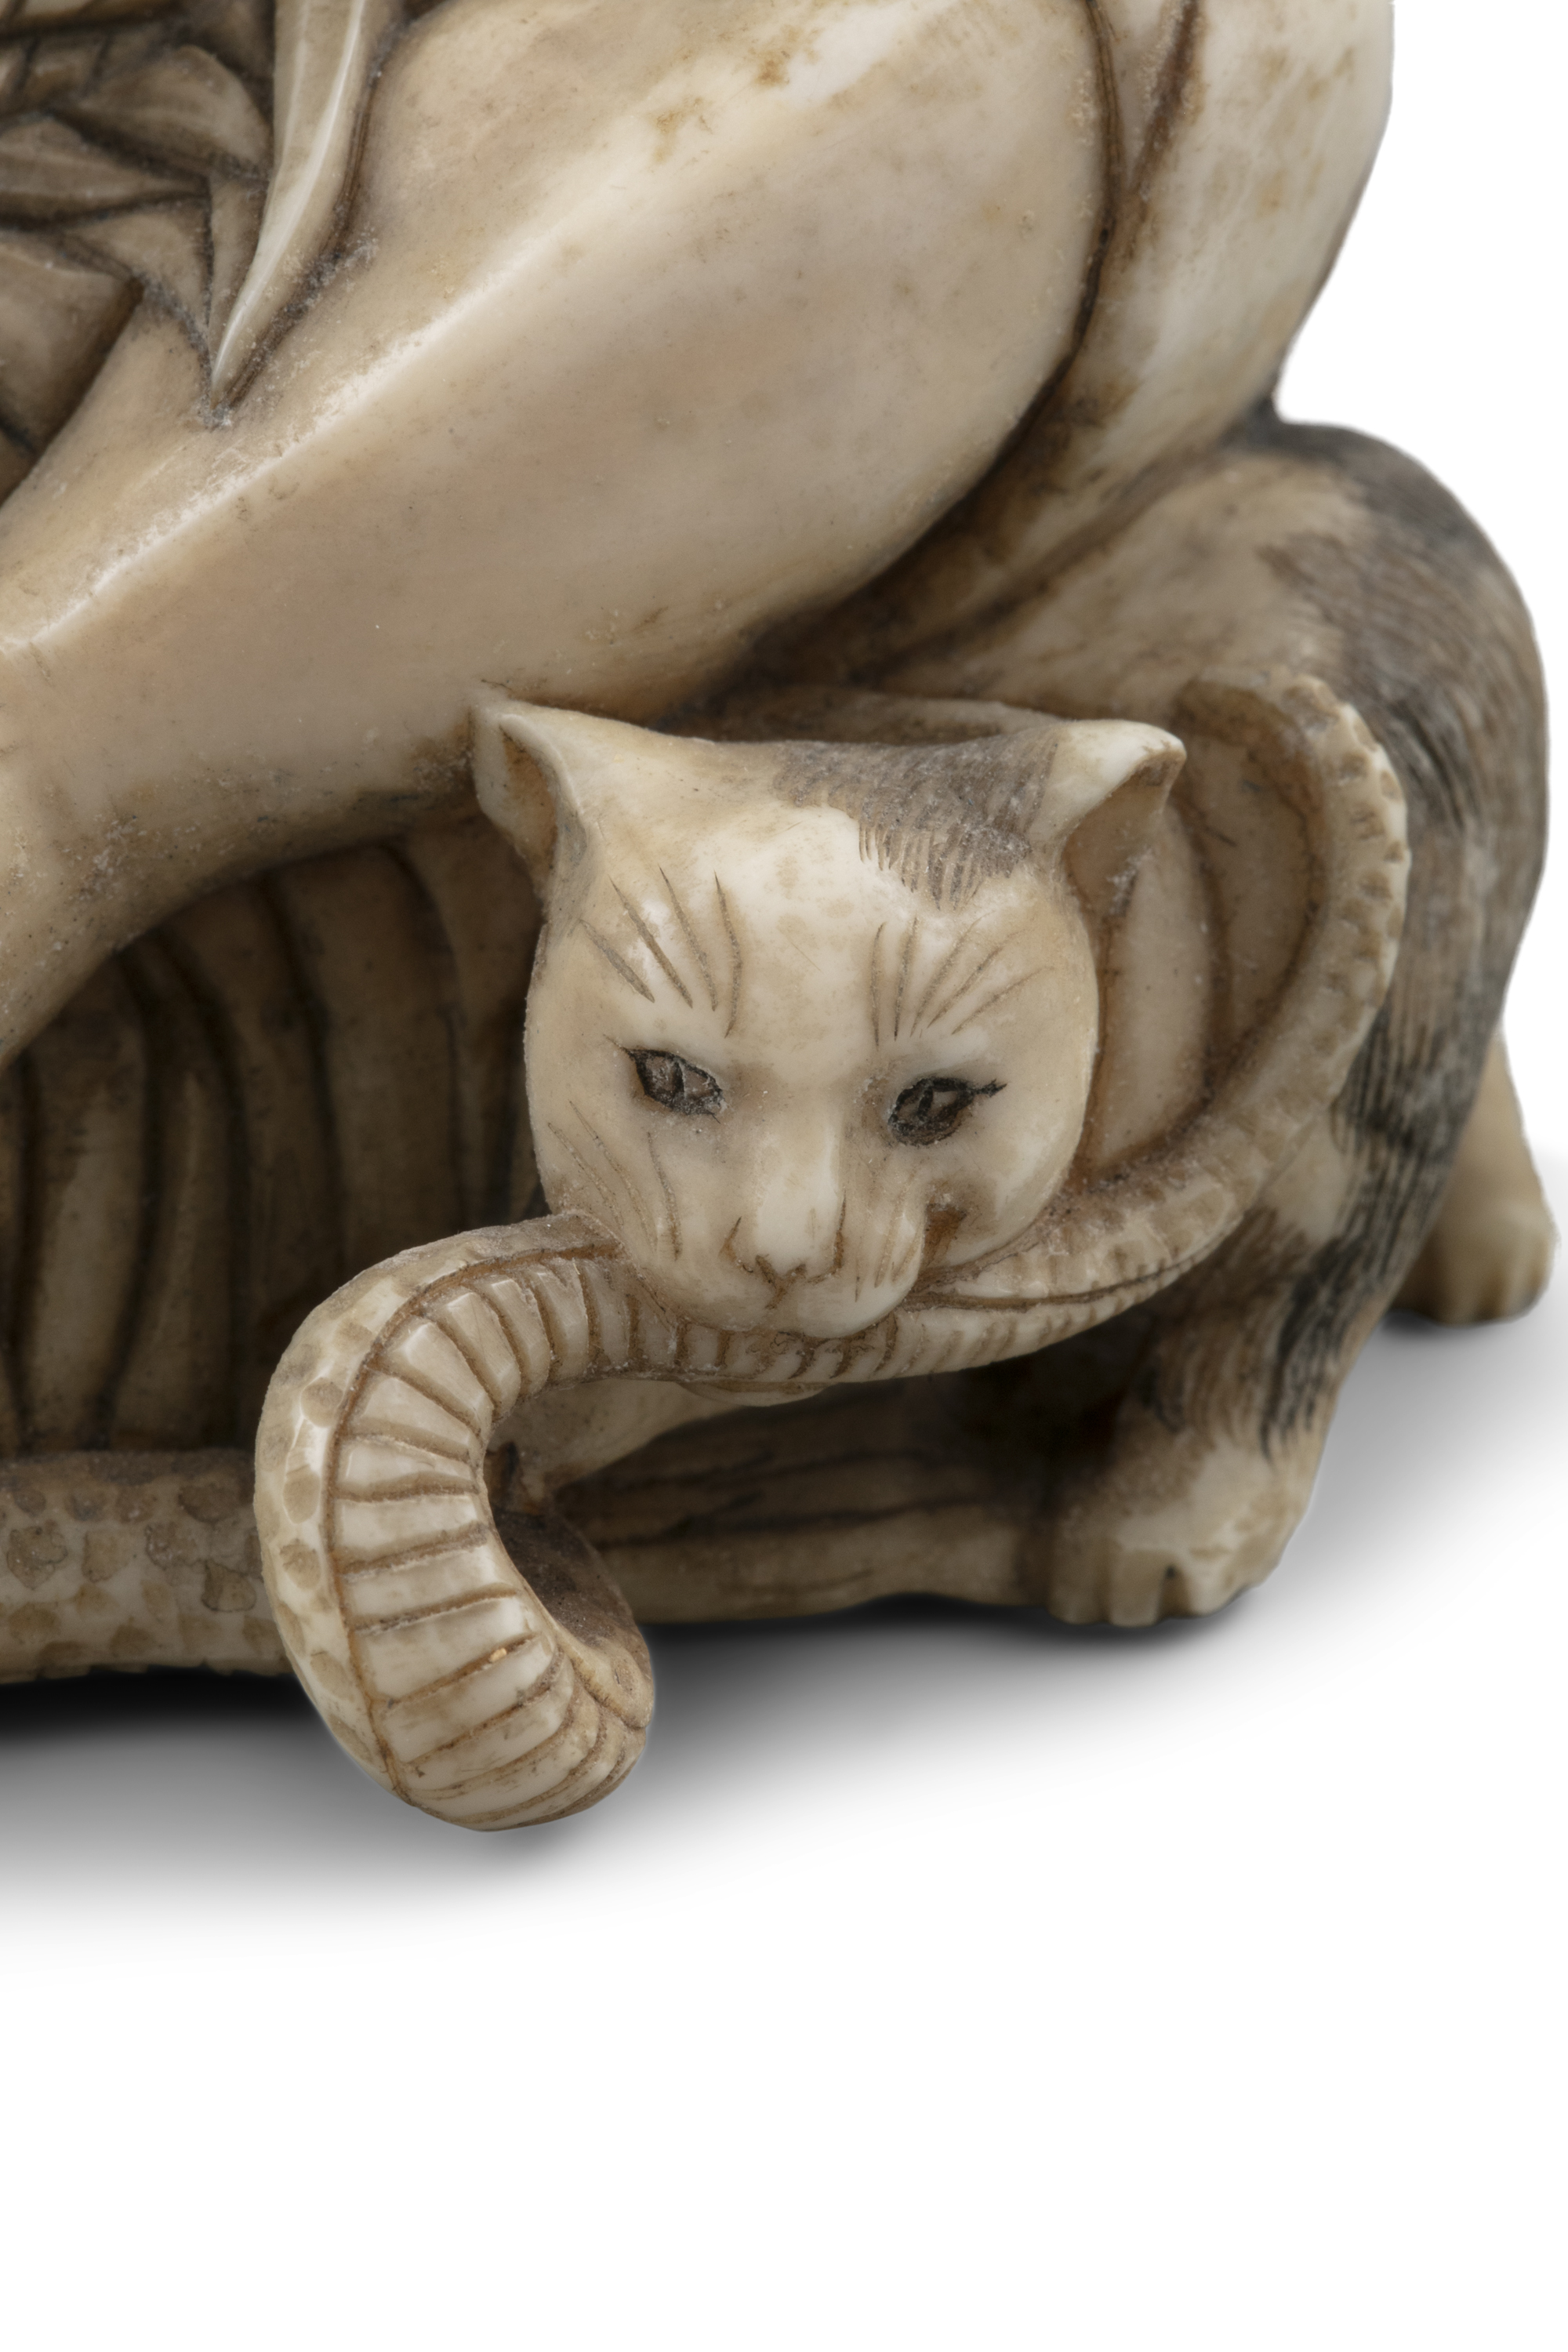 *MASAHIDE 正秀: A CARVED IVORY OKIMONO OF SCARED MAN WITH A CAT AND A SNAKE Japan, Meiji period, - Image 2 of 14